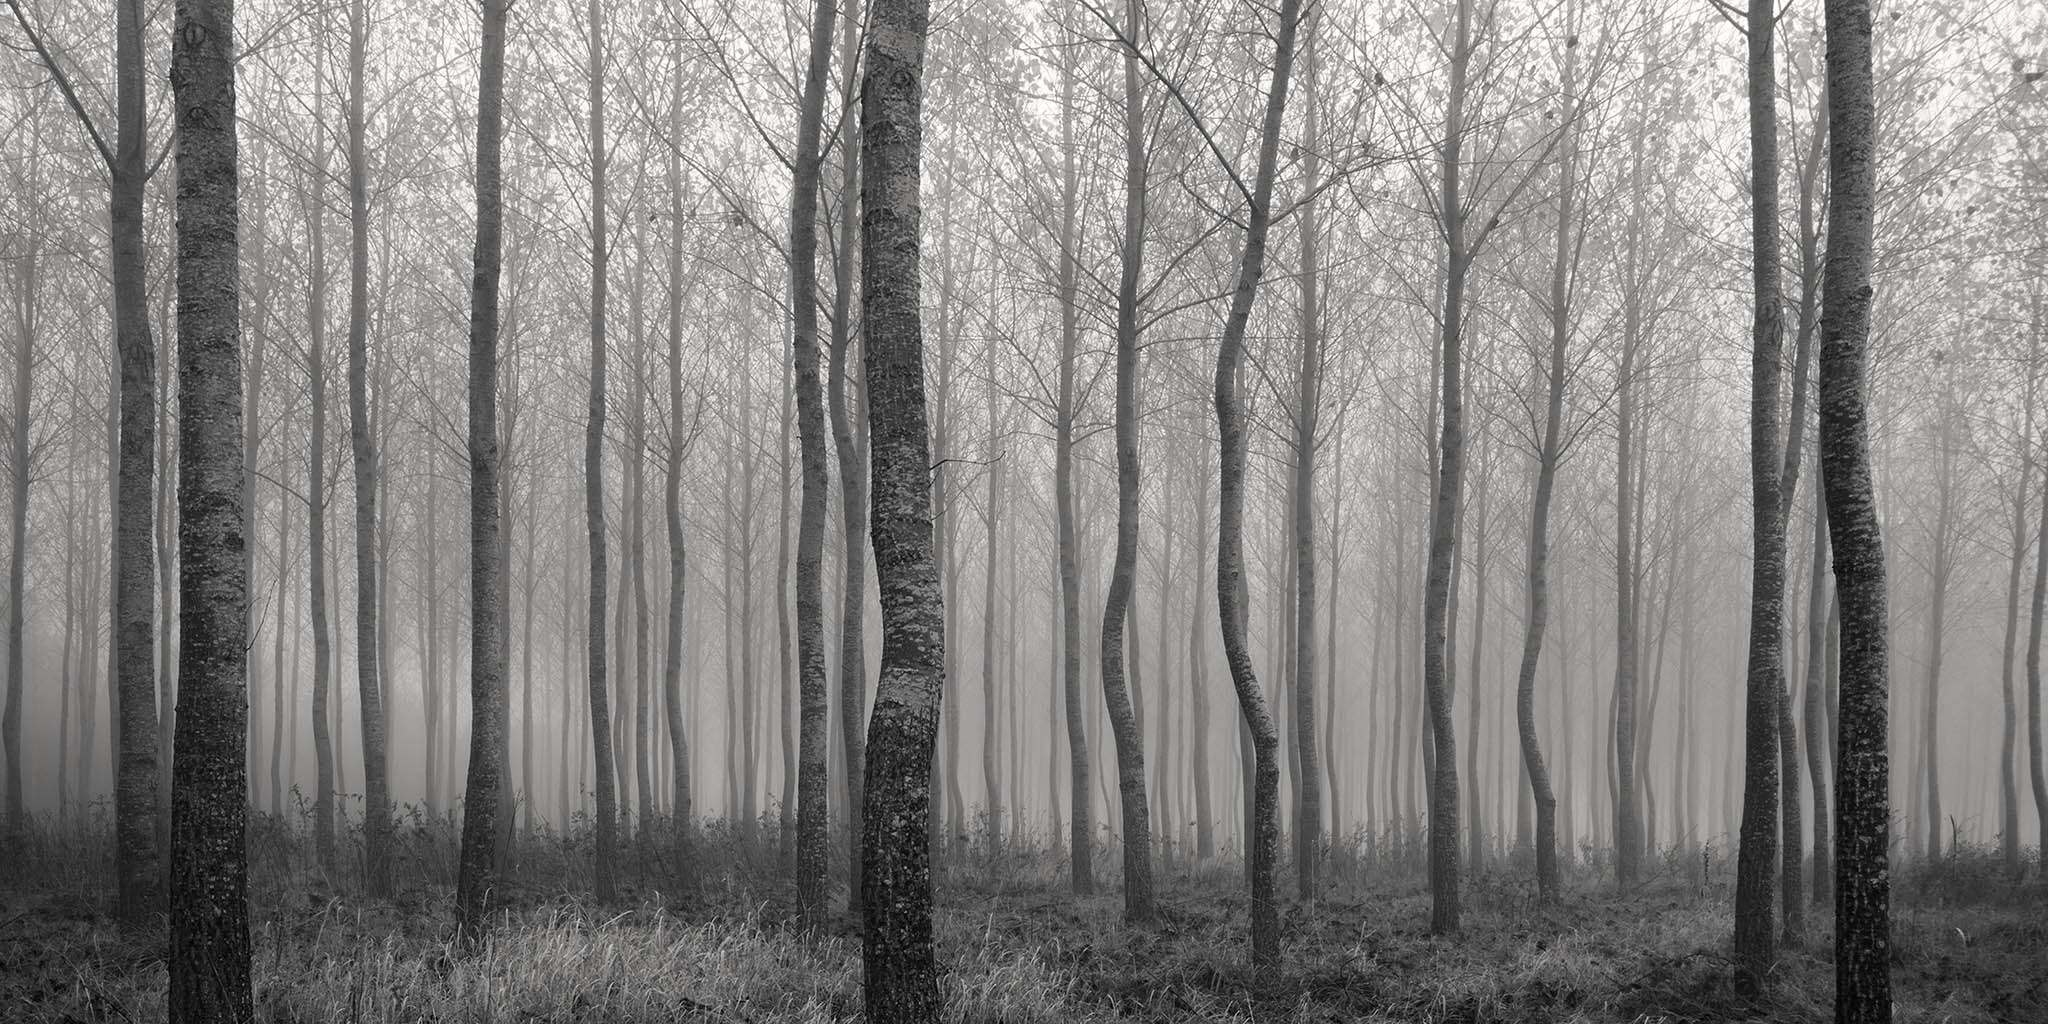 A small plantation of young tree receding into the autumnal mist in Southwater, UK.